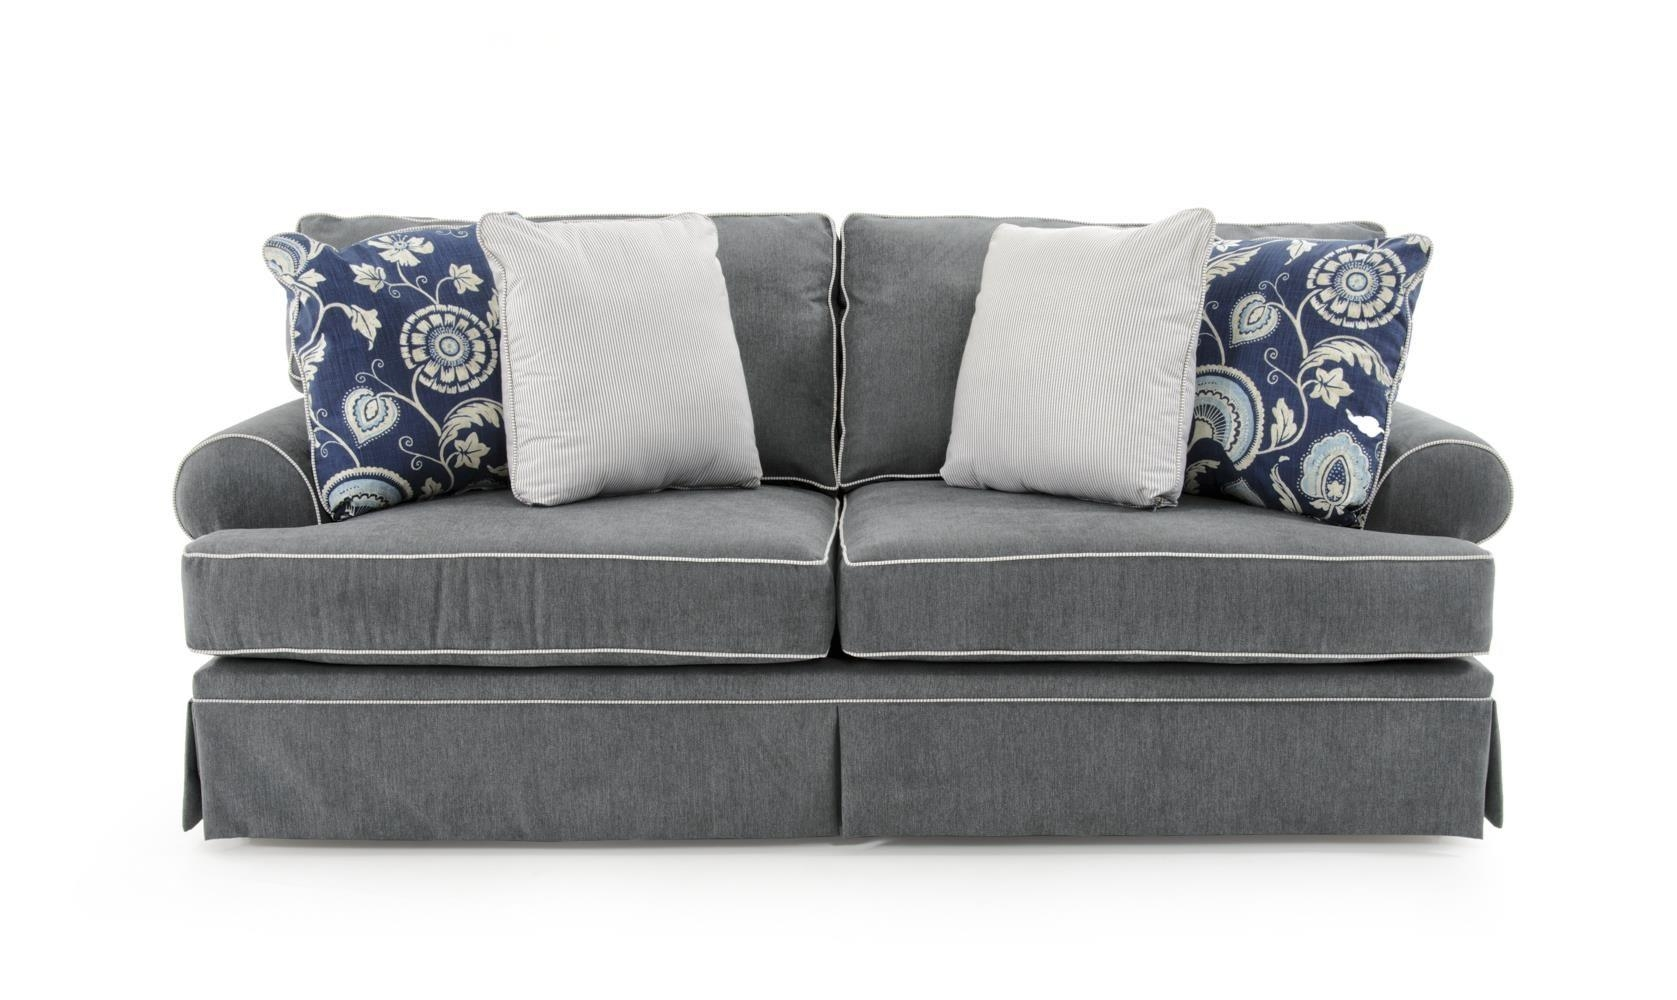 Broyhill Furniture Emily Queen Goodnight Sleeper Sofa – Baer's Pertaining To Broyhill Emily Sofas (Image 9 of 20)